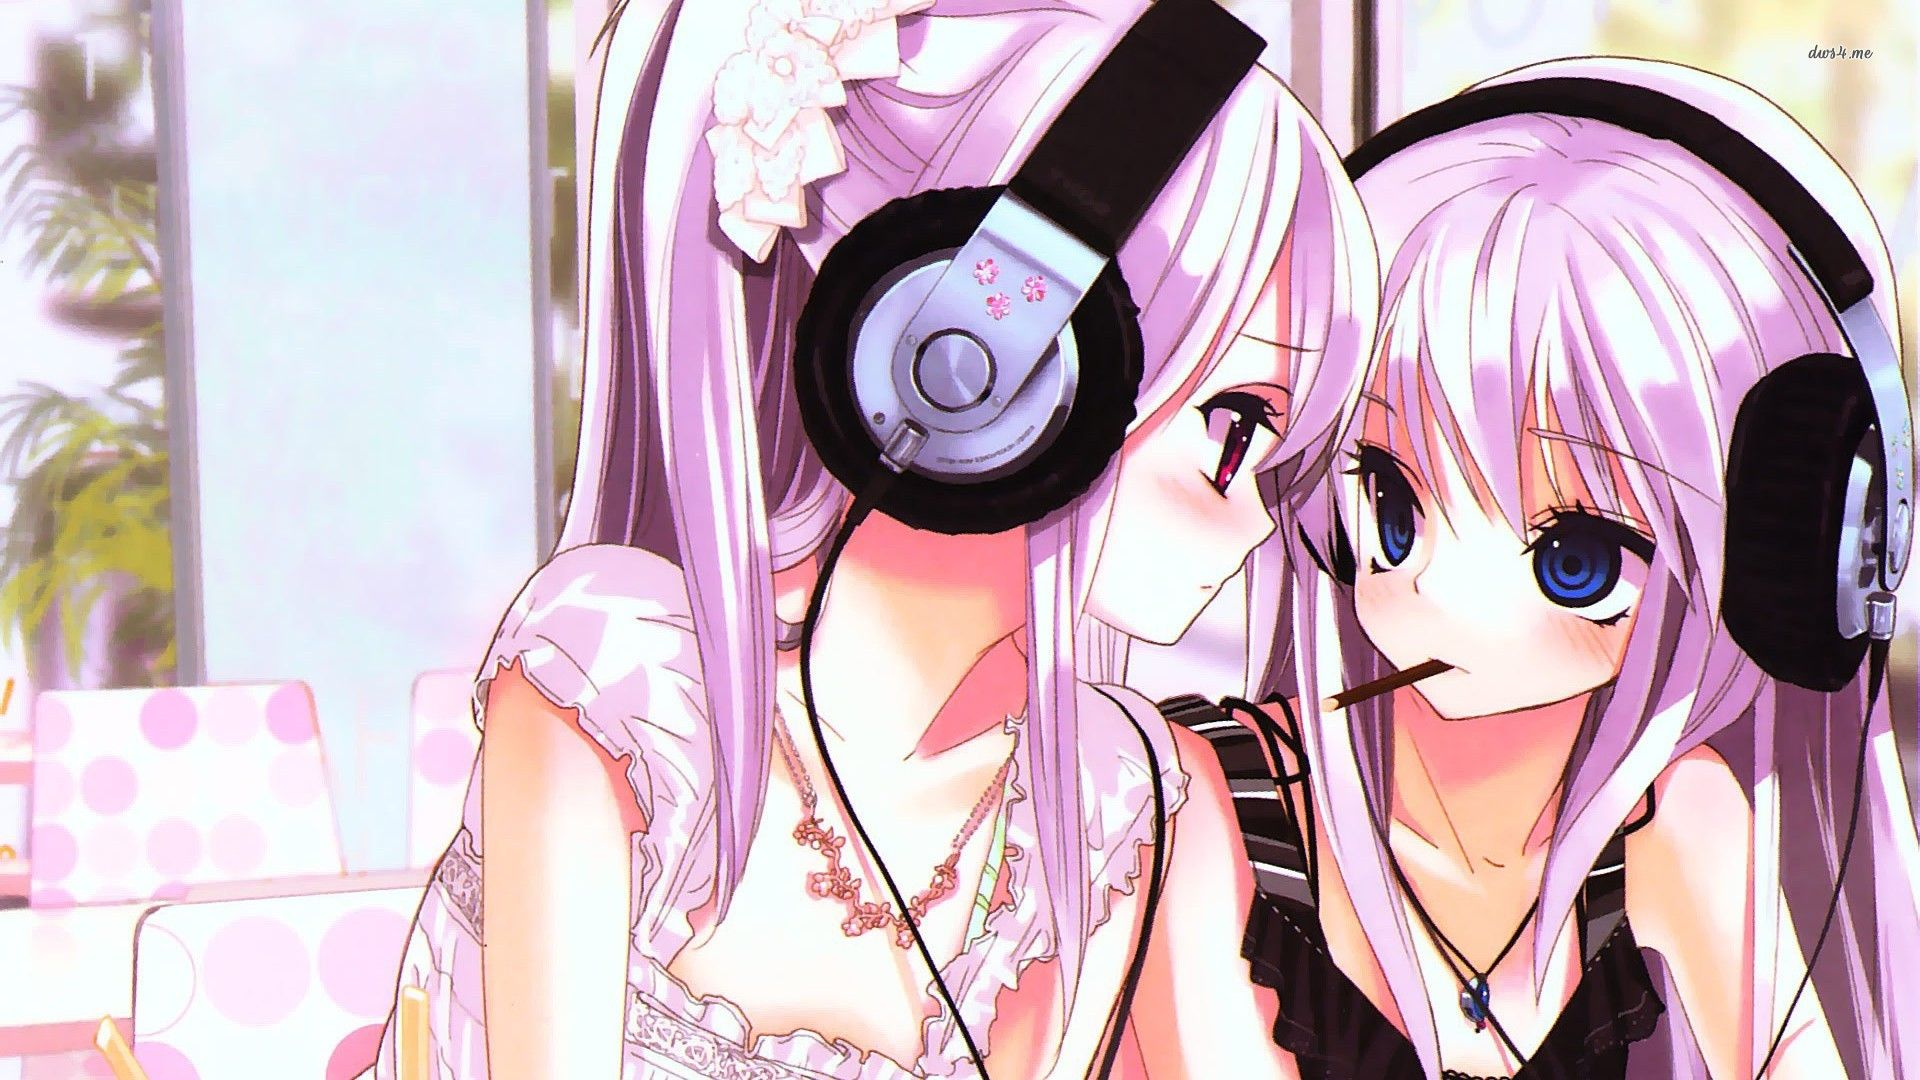 Pin By Selina Ta On Wallpapers Anime Wallpaper Download Anime Wallpaper Girl With Headphones